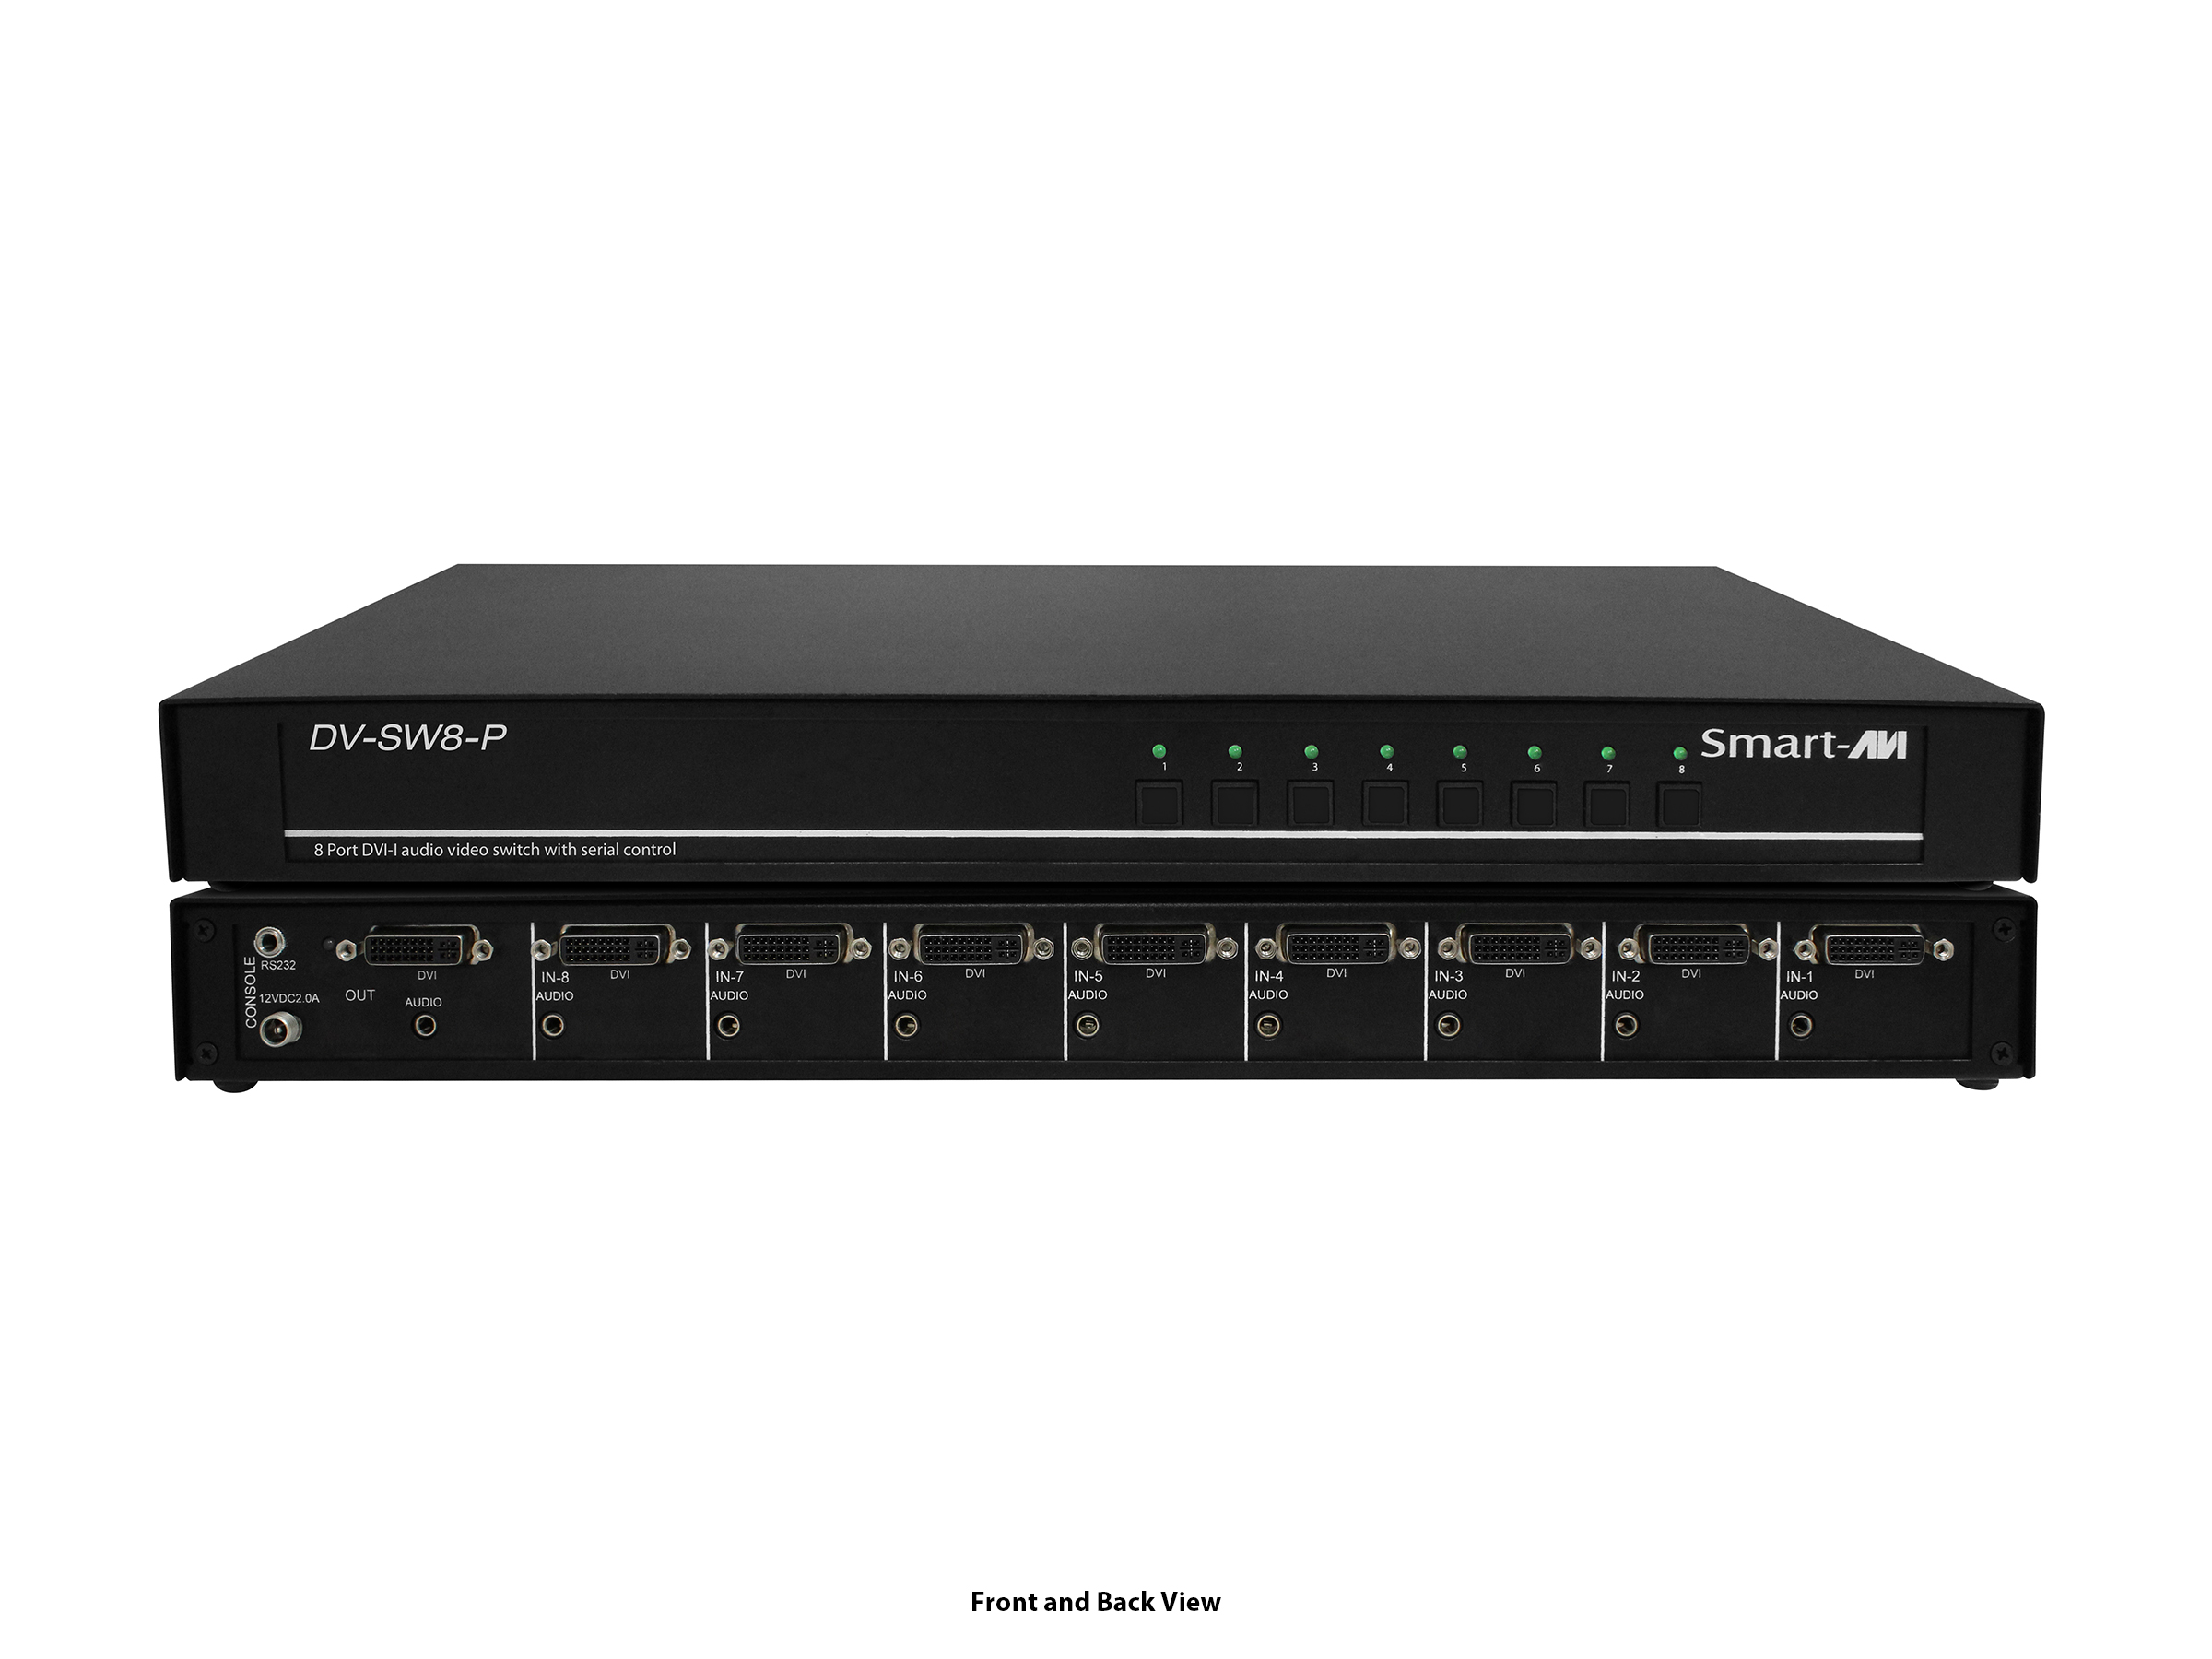 DV-SW8-P-S 8-Port DVI-I Dual Link Switch with Audio by Smartavi